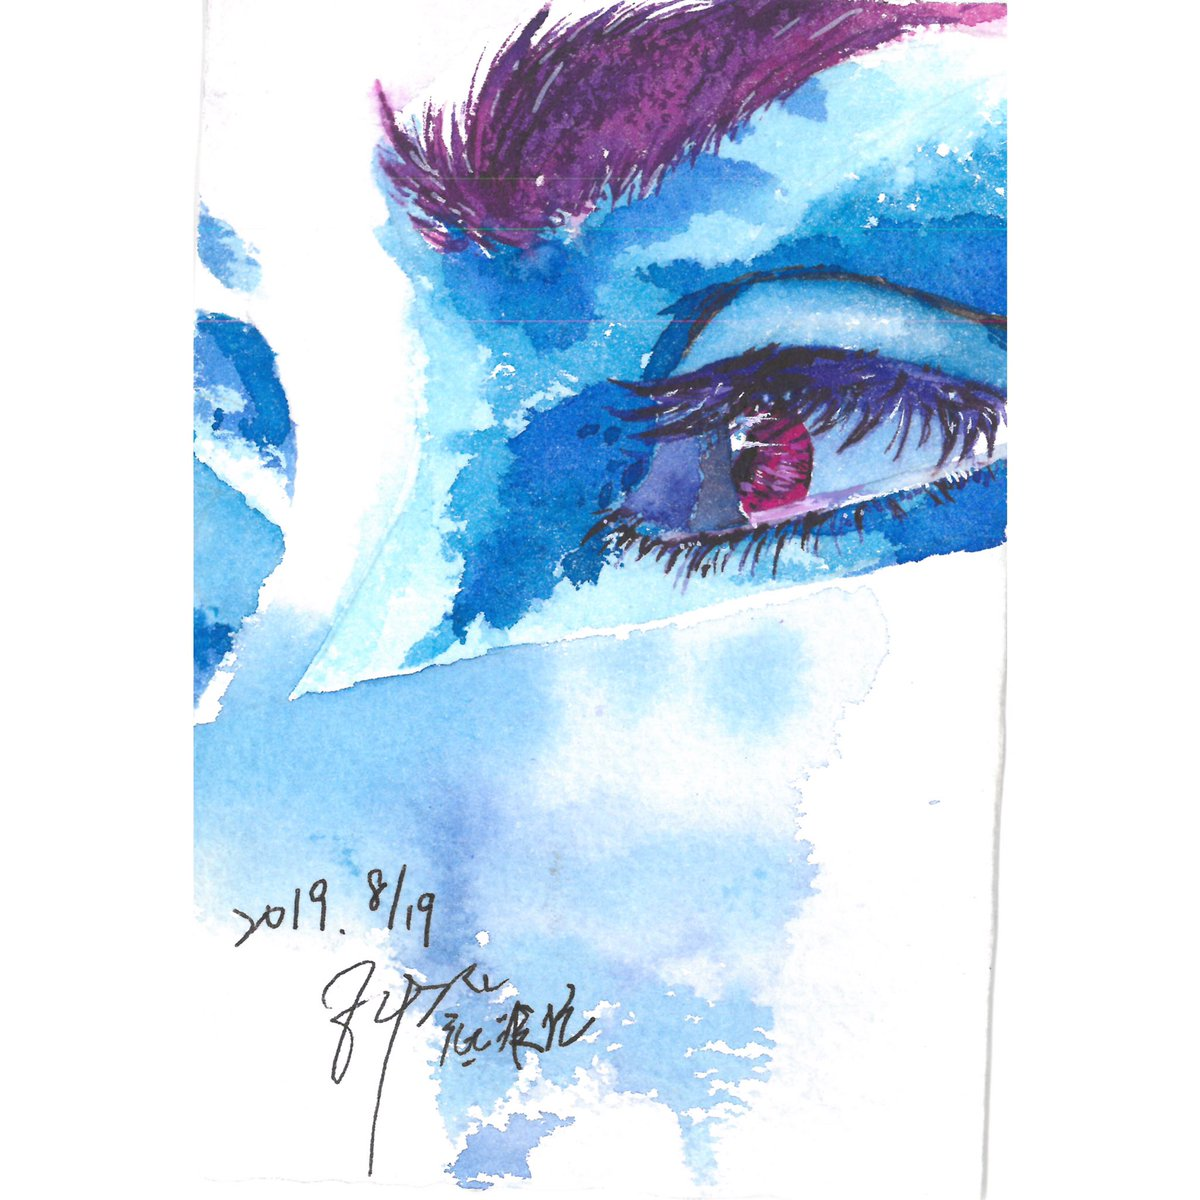 #art  #watercolour    Made 2019 By Hope pic.twitter.com/ue3CrnYt4U